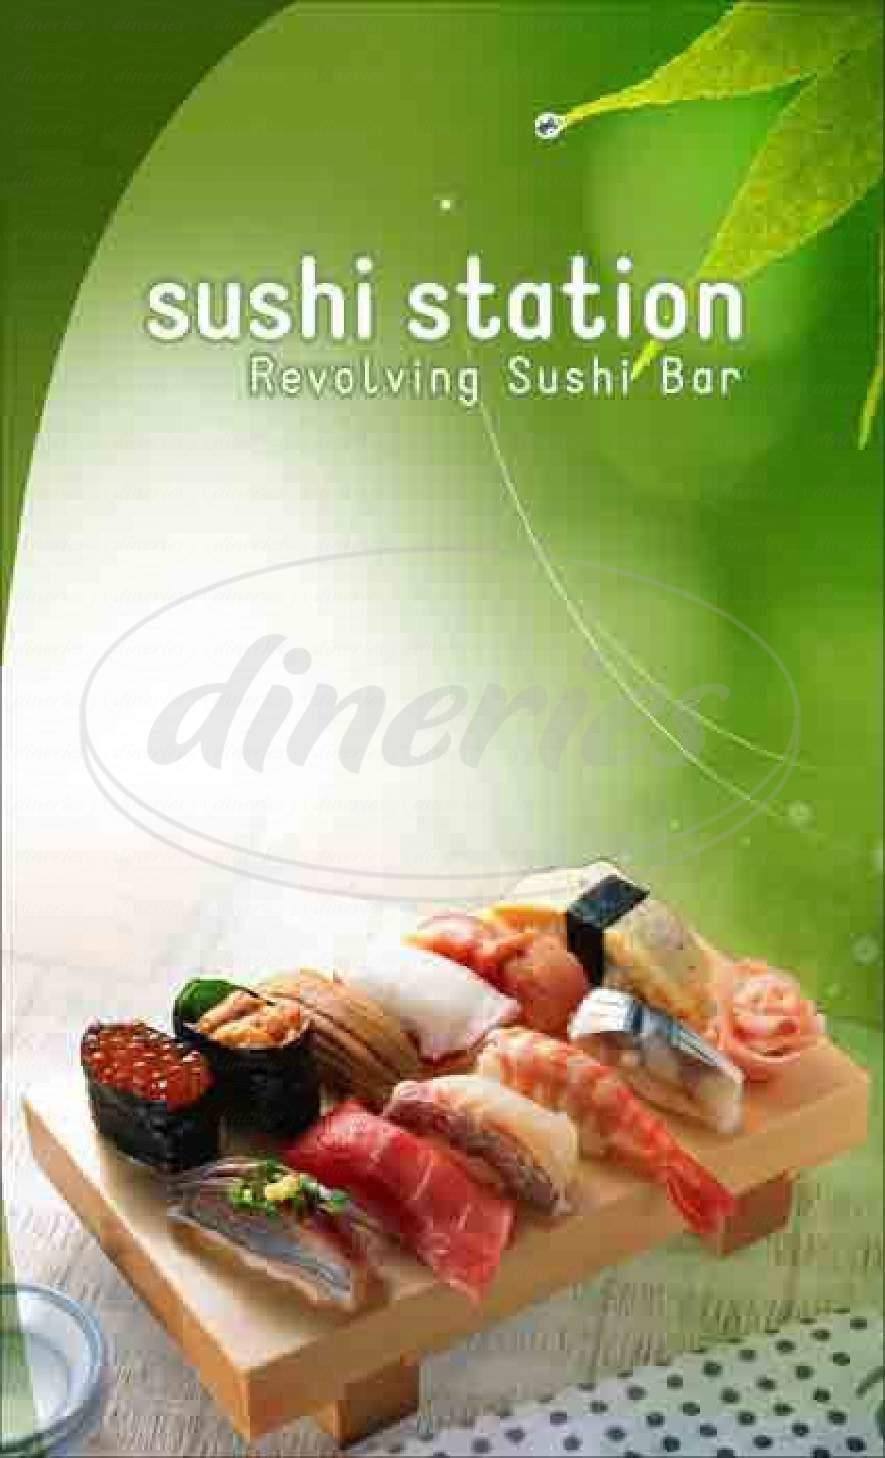 menu for Sushi Station